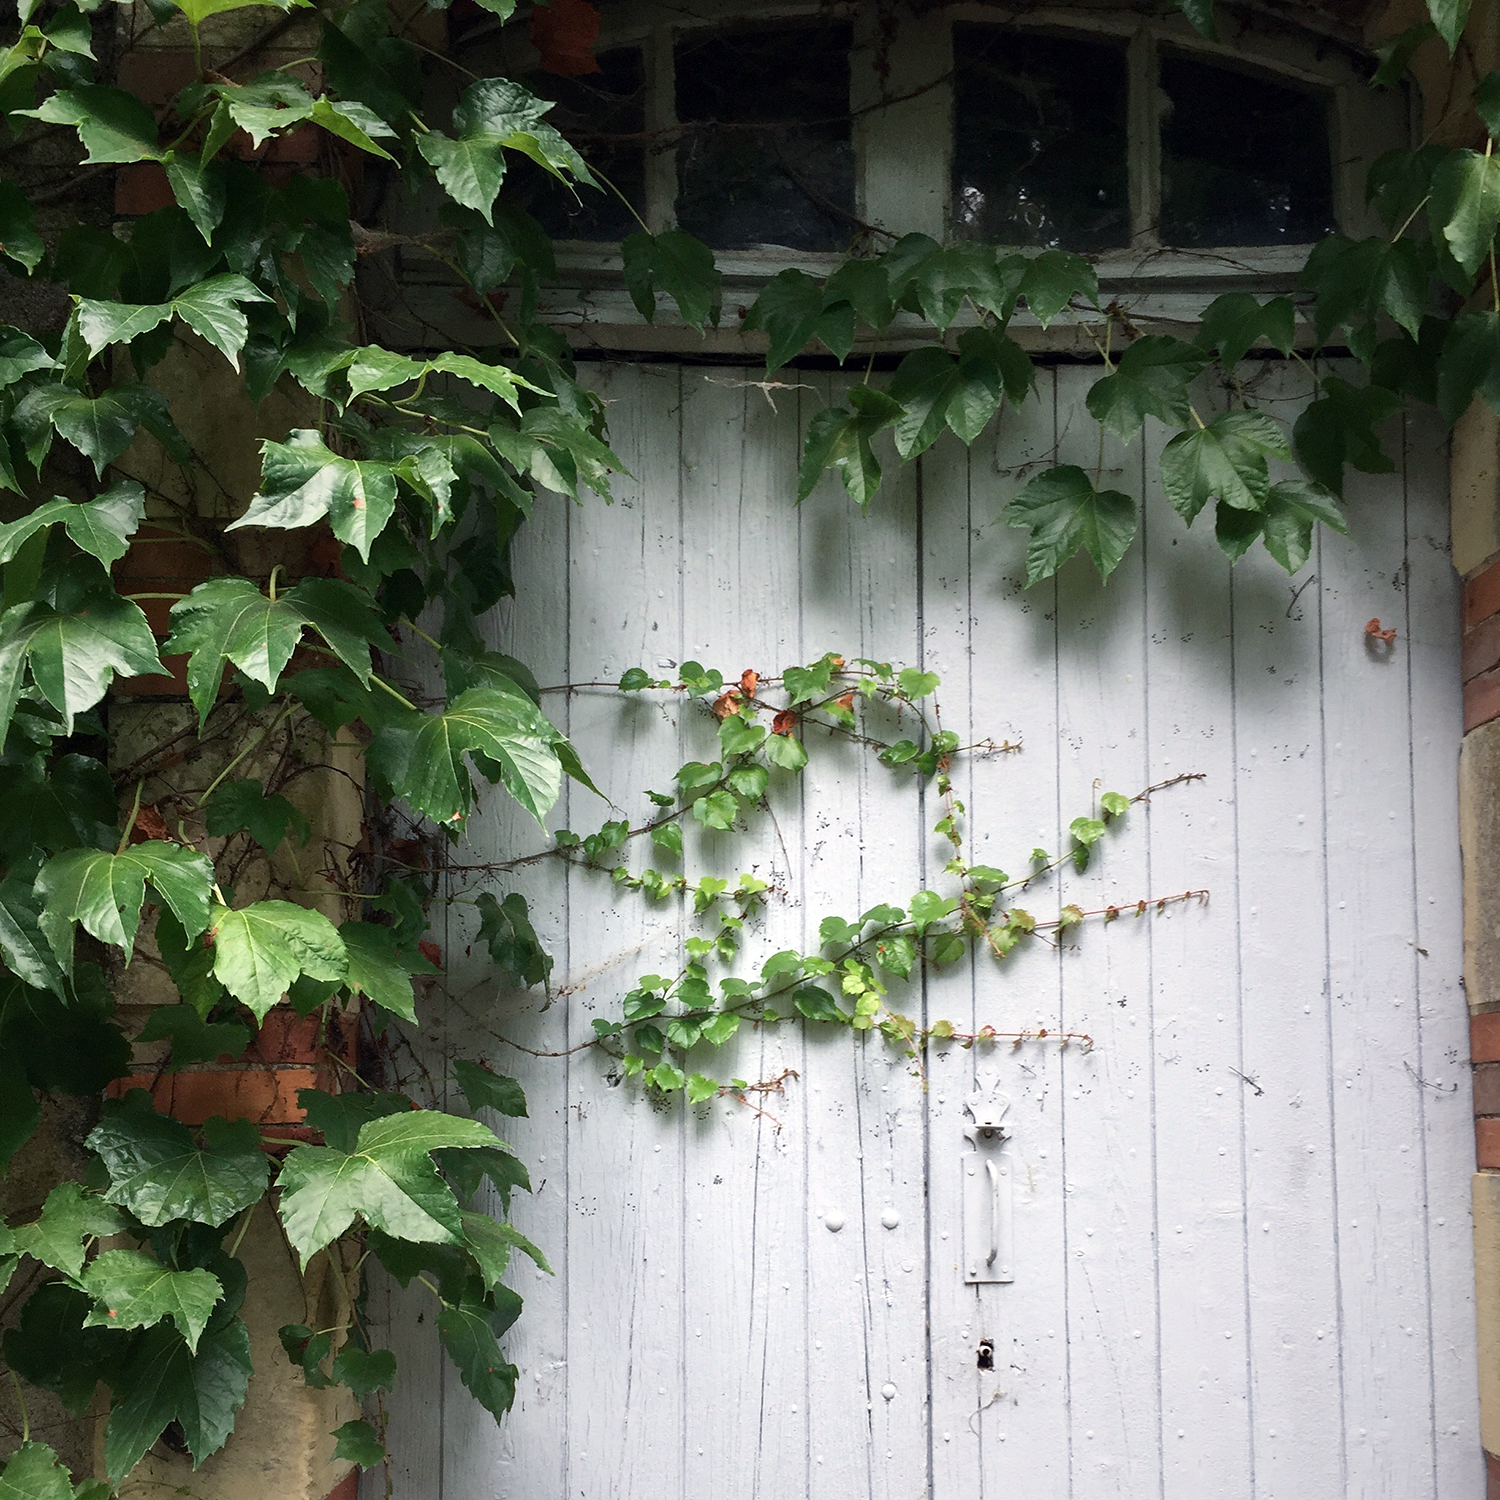 A doorway half-hidden by ivy.